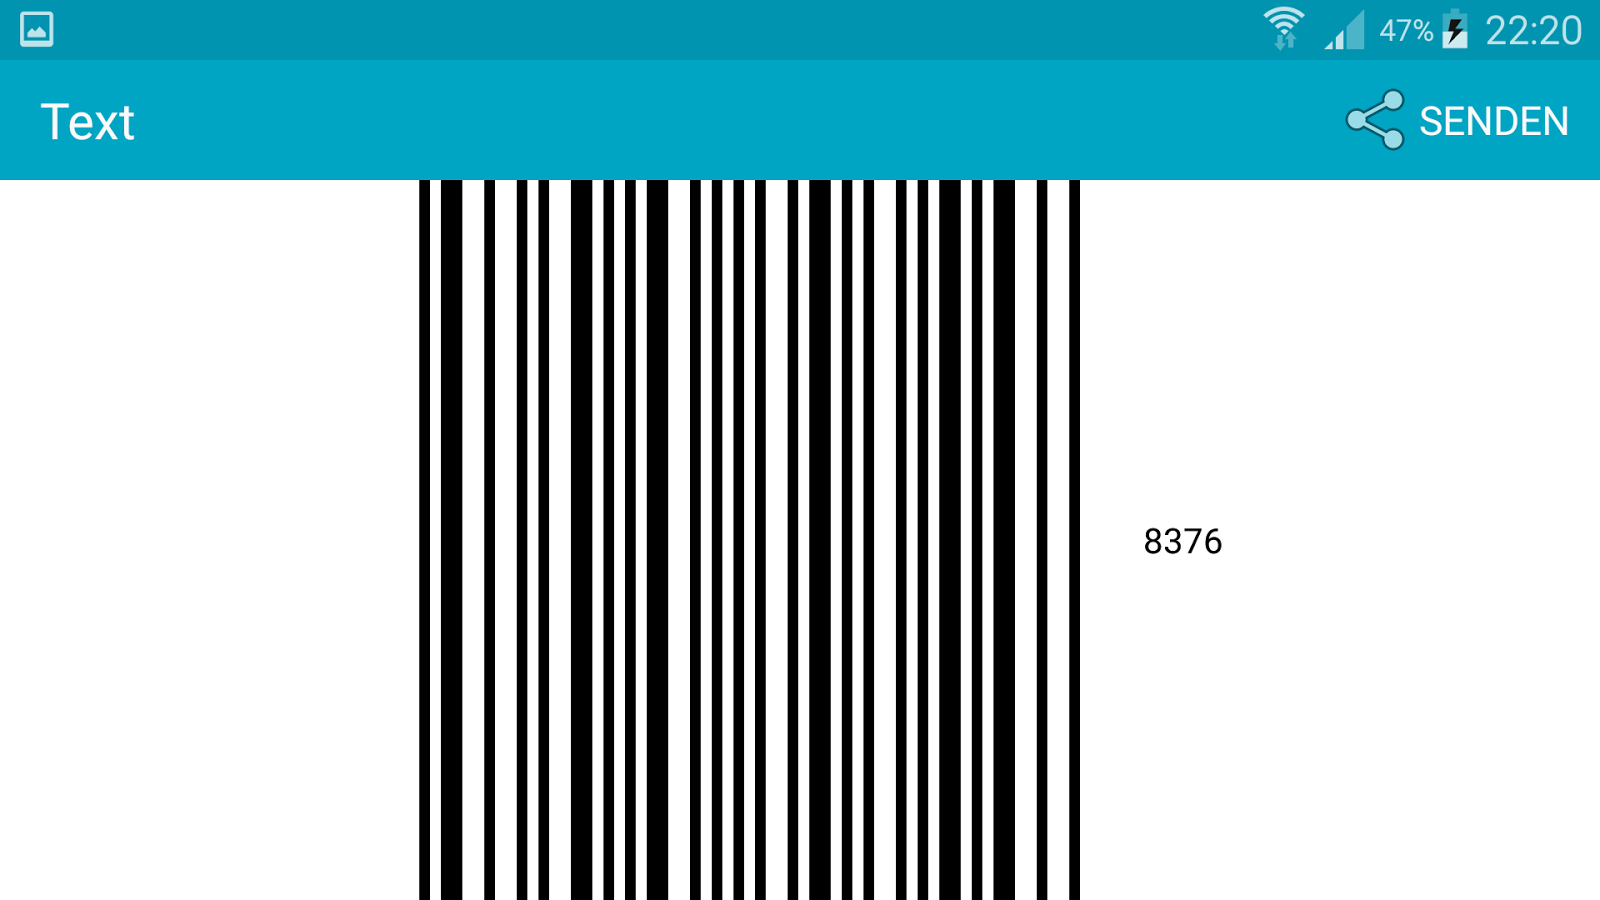 Barcode generator - Android Apps on Google Play